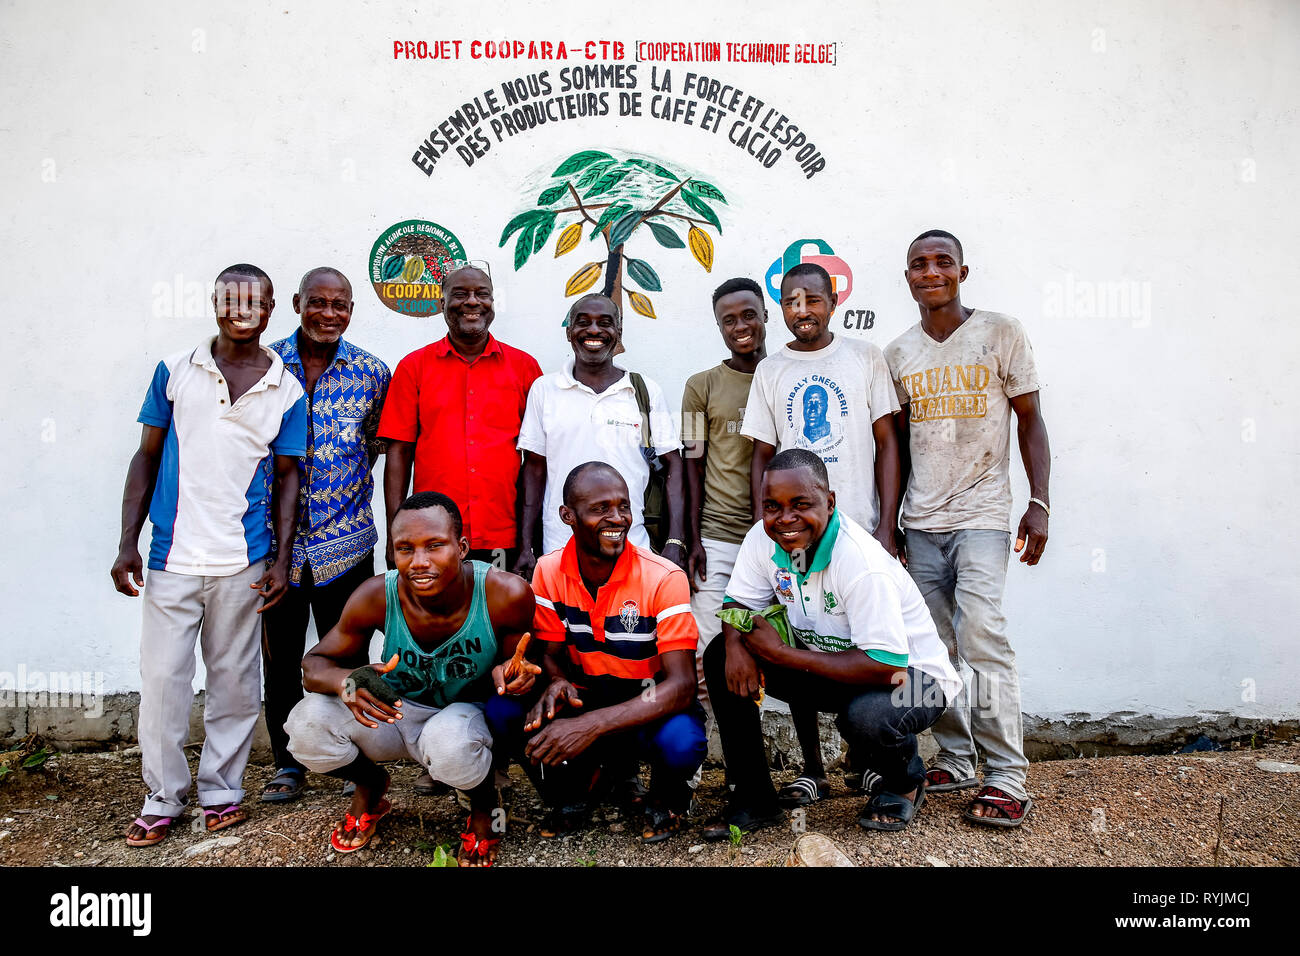 Cocoa planters' cooperative members in a village near Agboville, Ivory Coast. - Stock Image